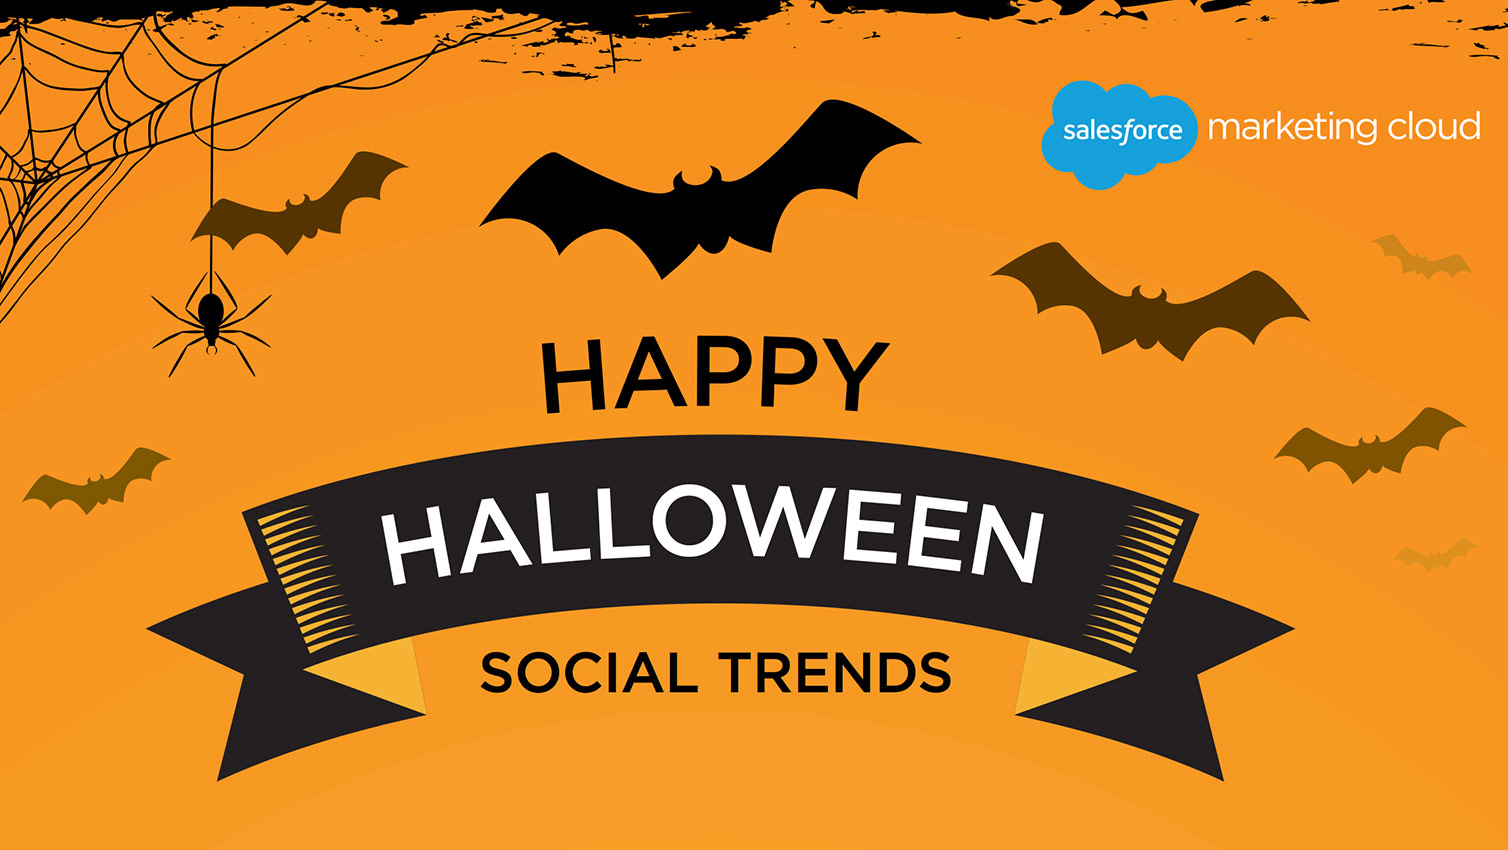 Halloween by the Numbers #Infographic: Top Stats, Social Trends, and Insights